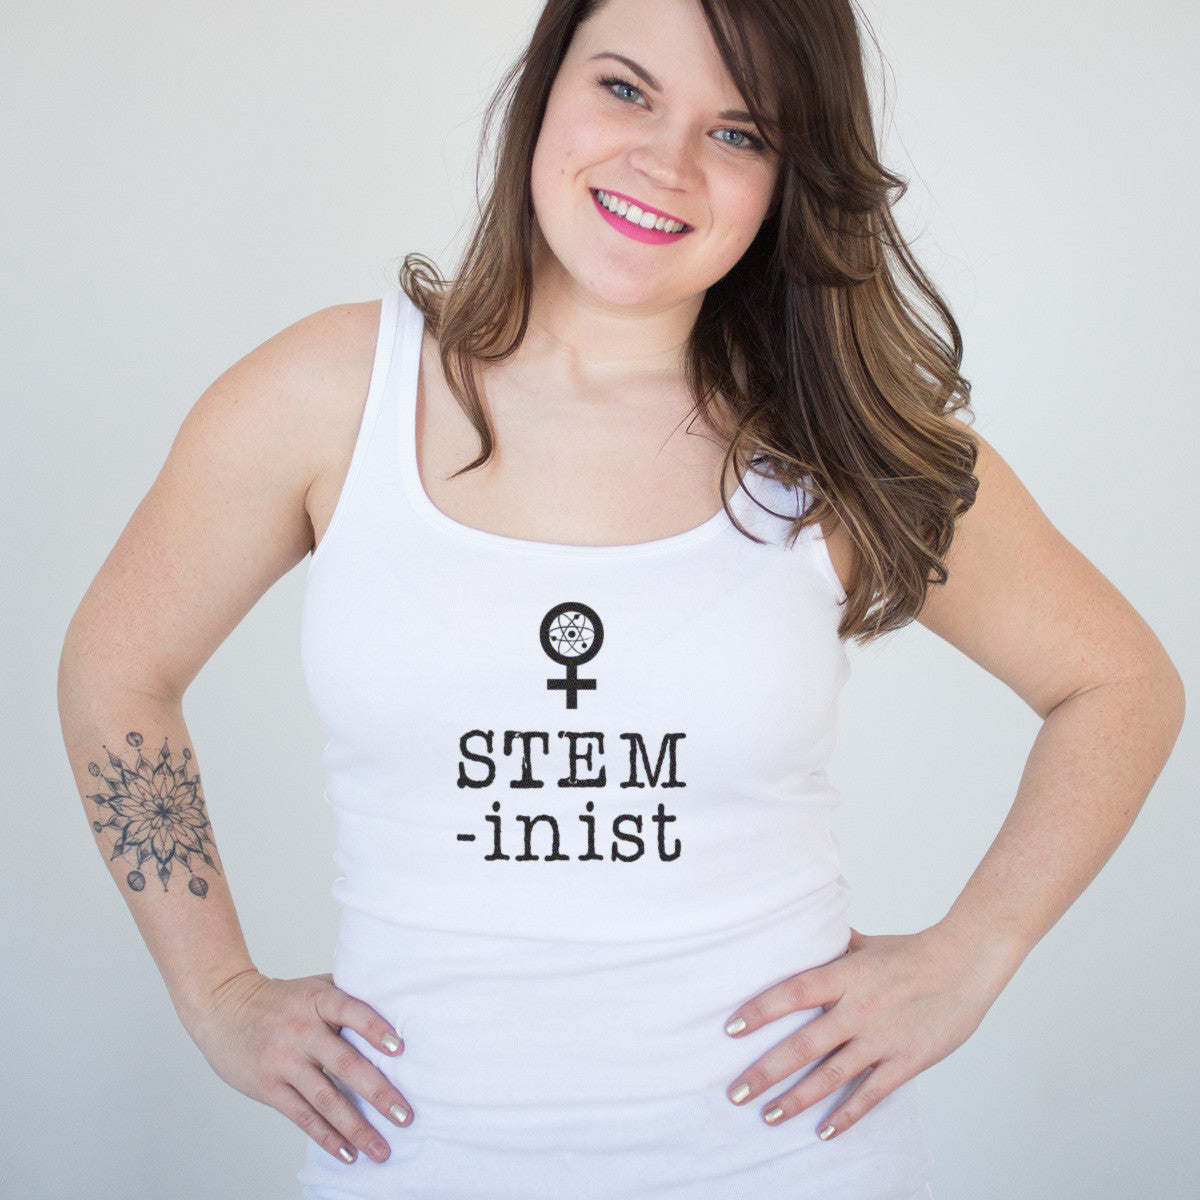 STEMinist Ladies' Tank